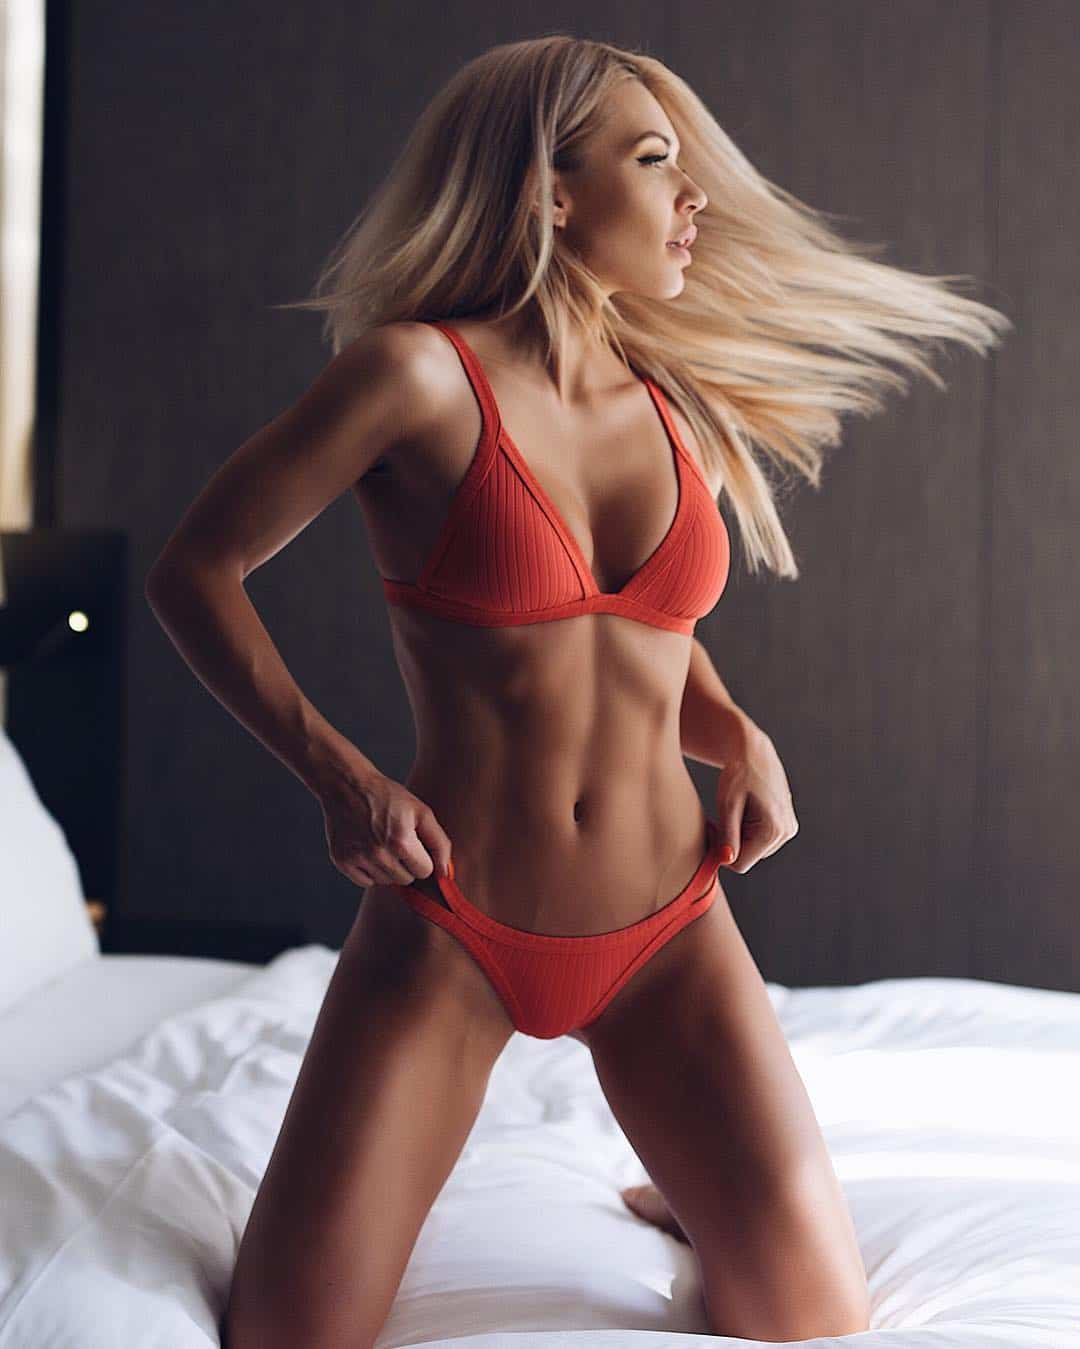 Ekaterina Usmanova hot in red bikini